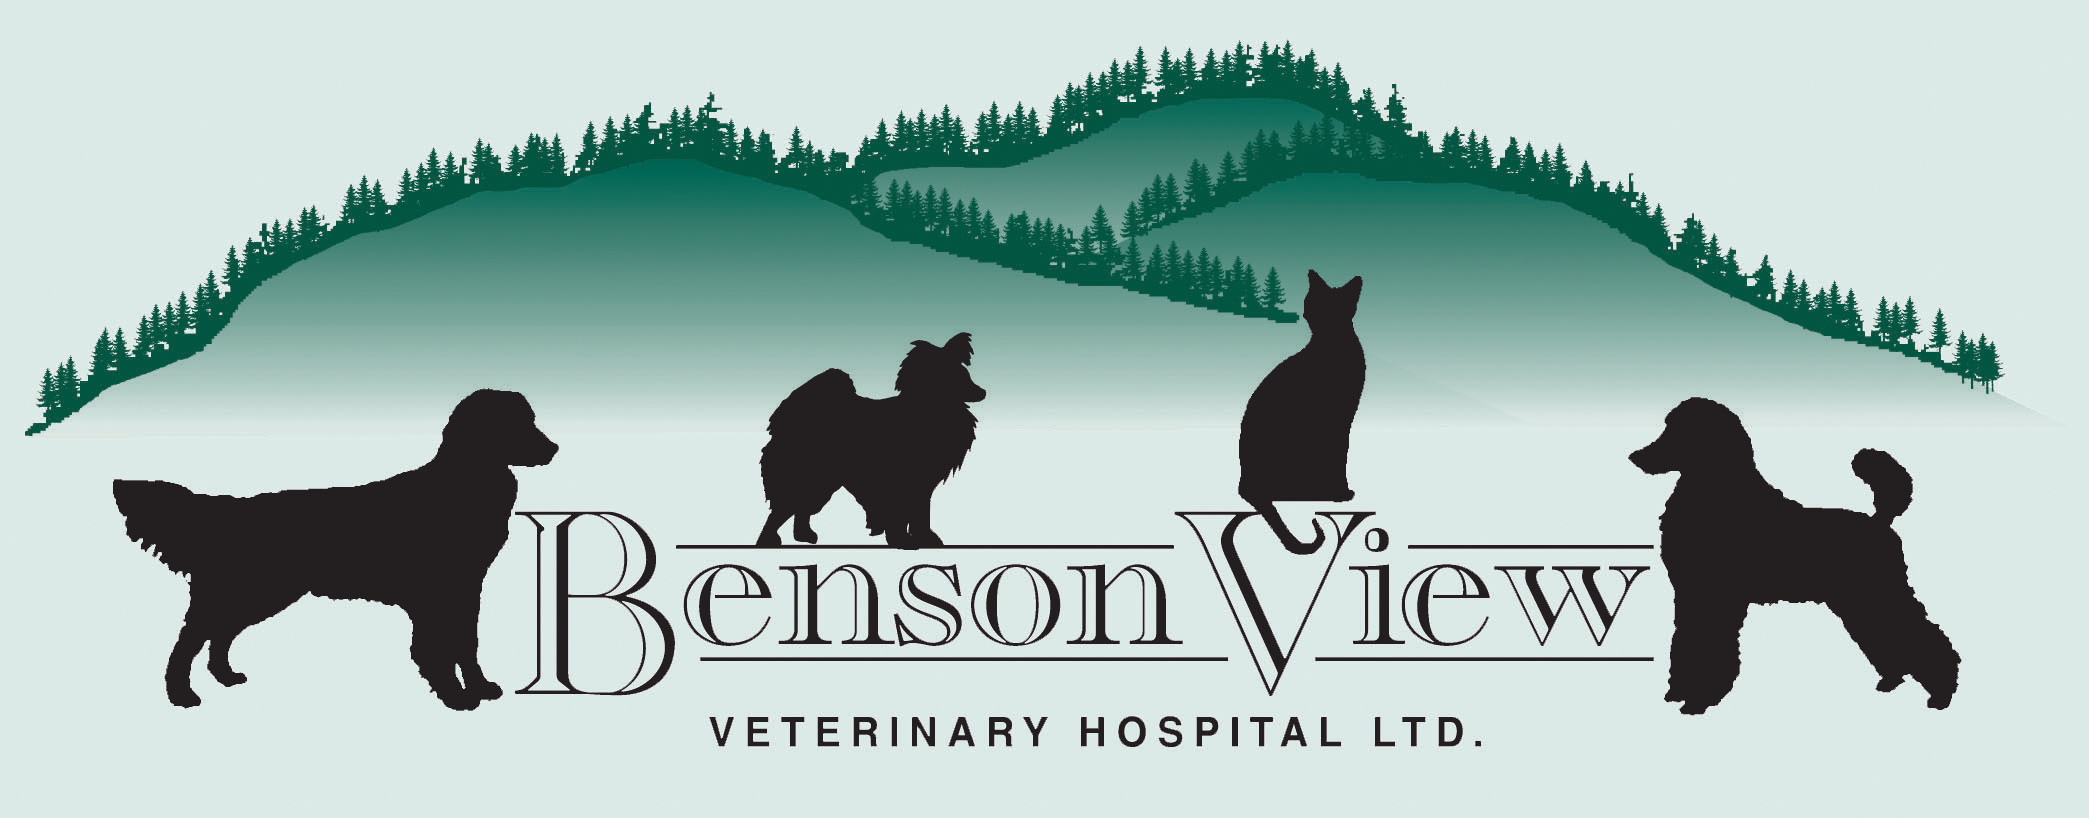 Benson View Veterinary Hospital